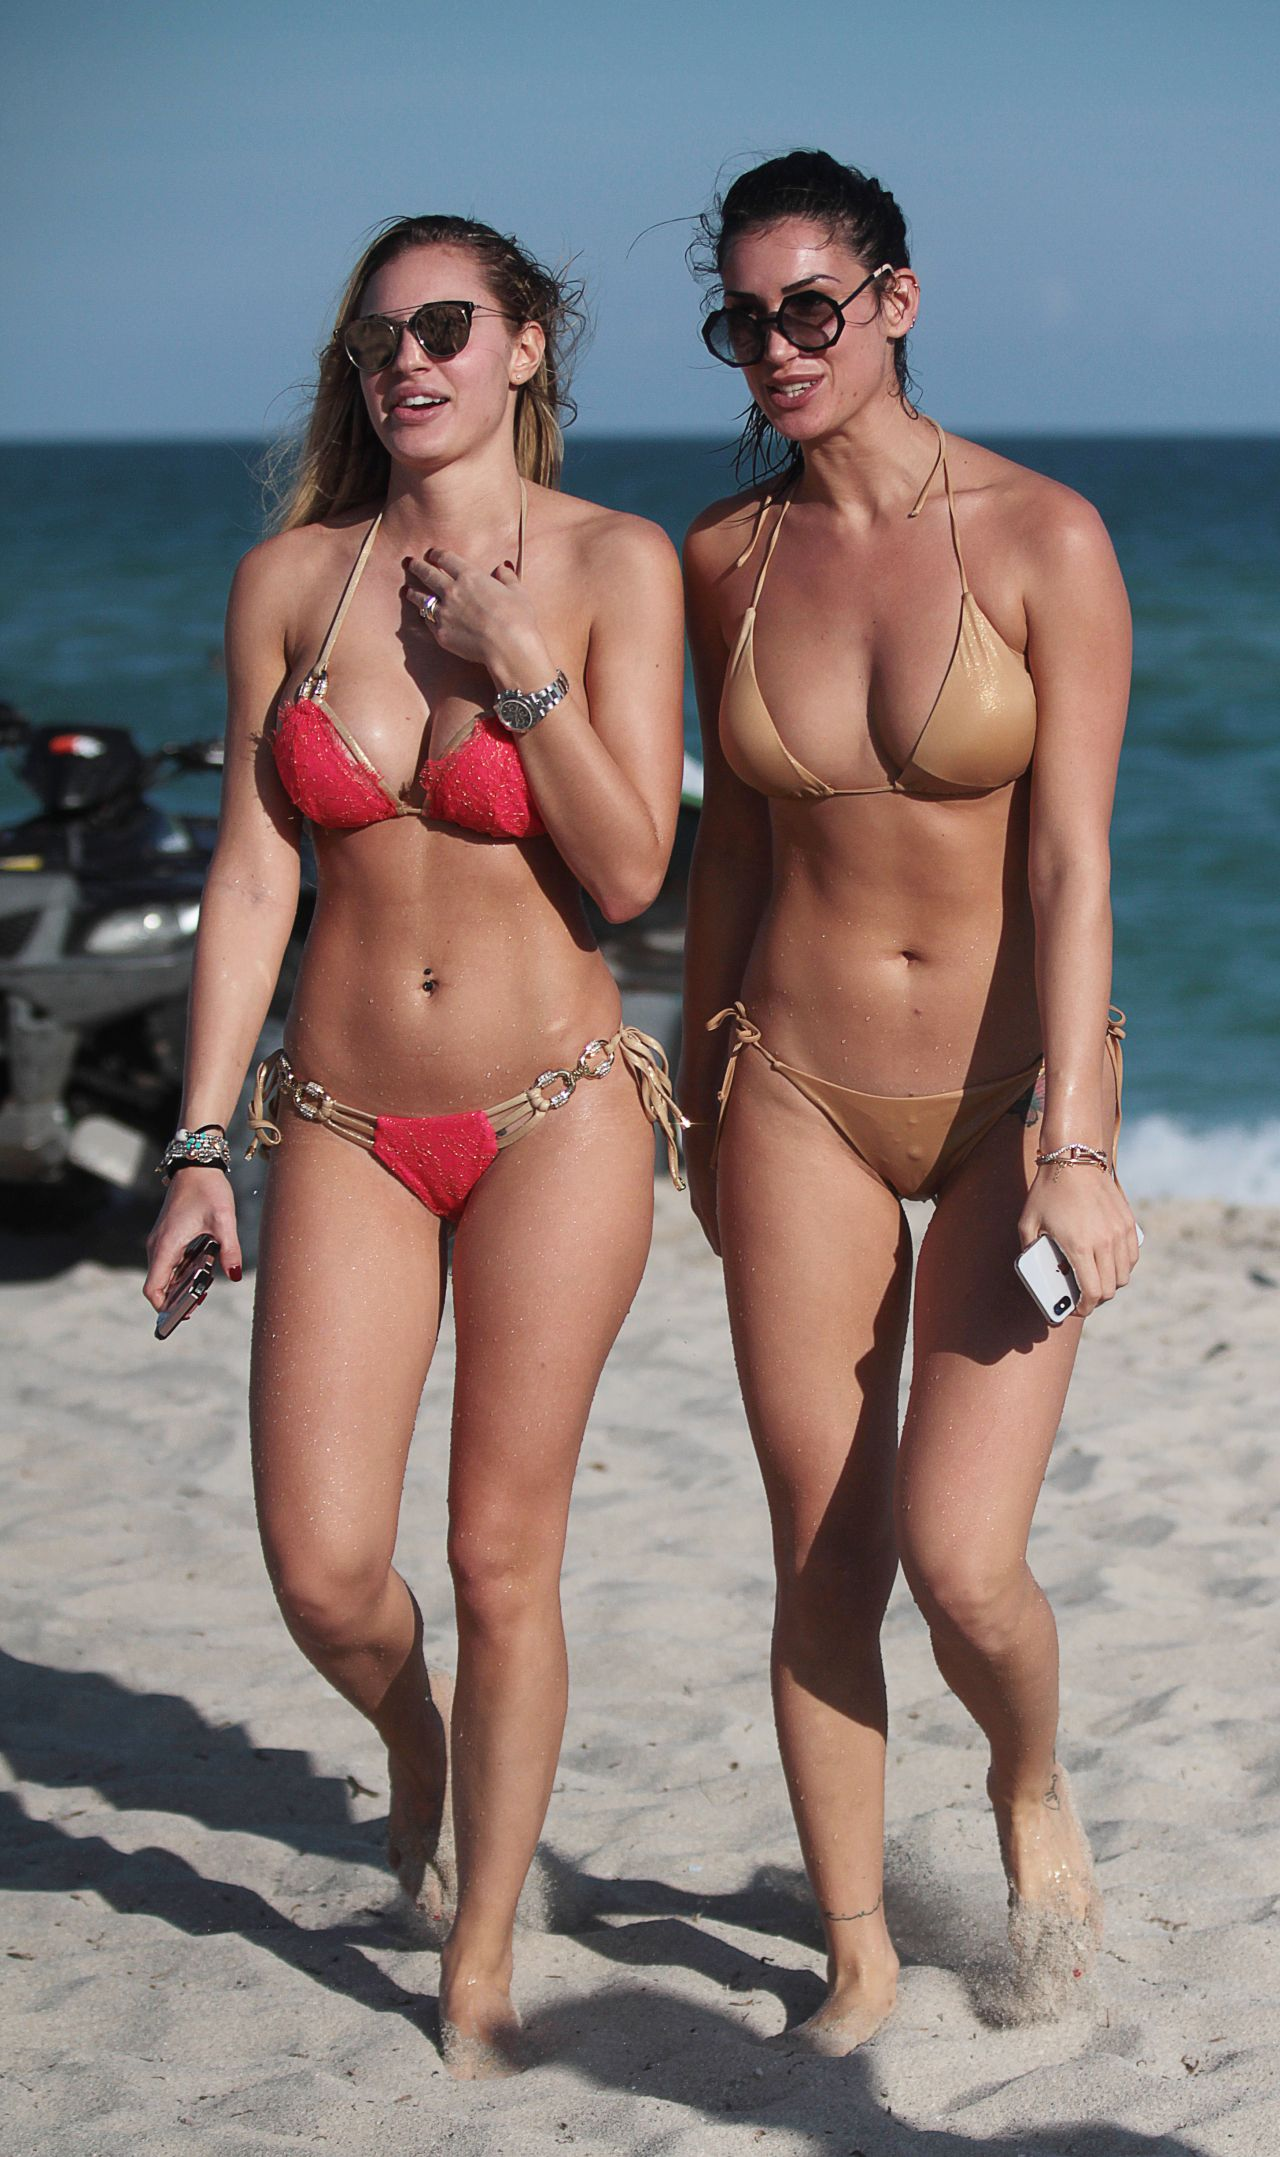 Livia Canalis and Francesca Brambilla in Bikini in Miami Beach